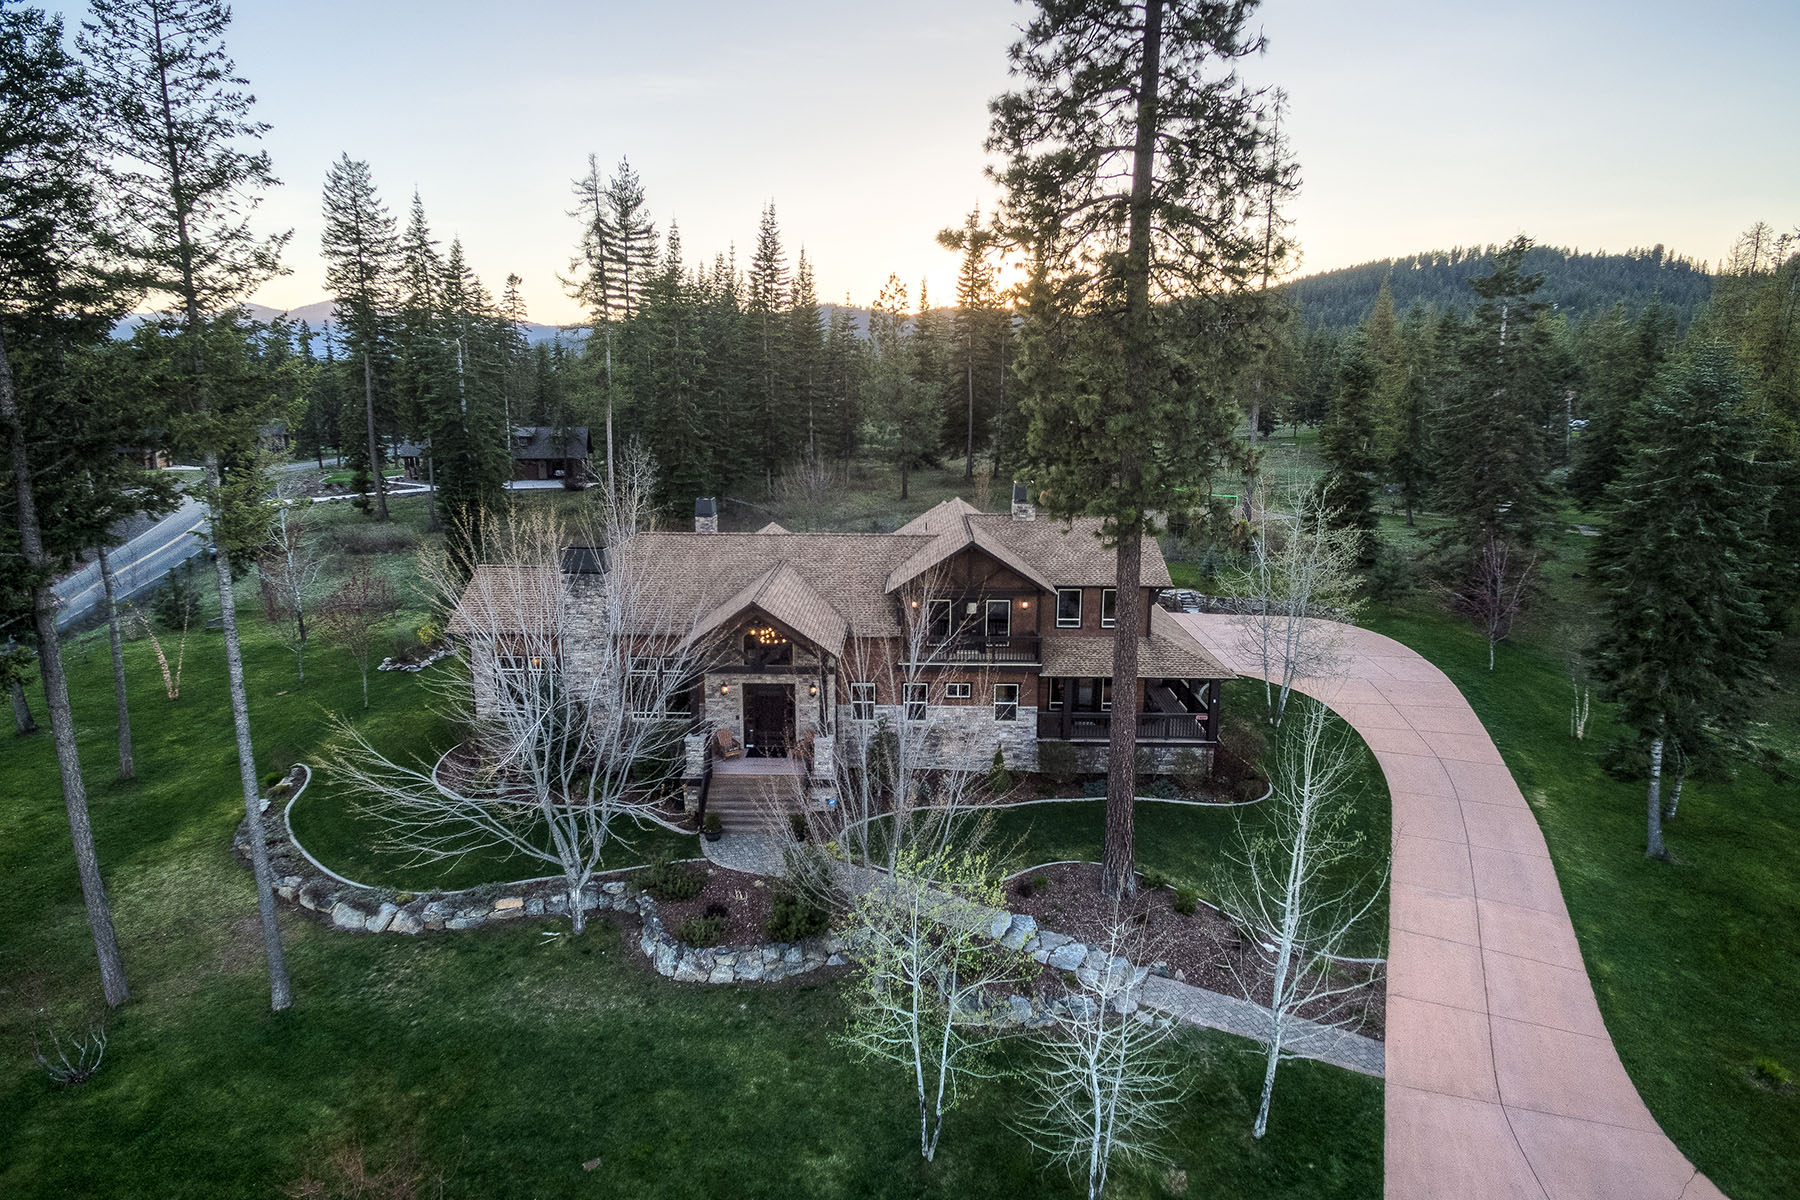 Single Family Home for Sale at Quality Custom-Built Home in Cougar Bay 2400 S Espinazo Dr Coeur D Alene, Idaho, 83814 United States